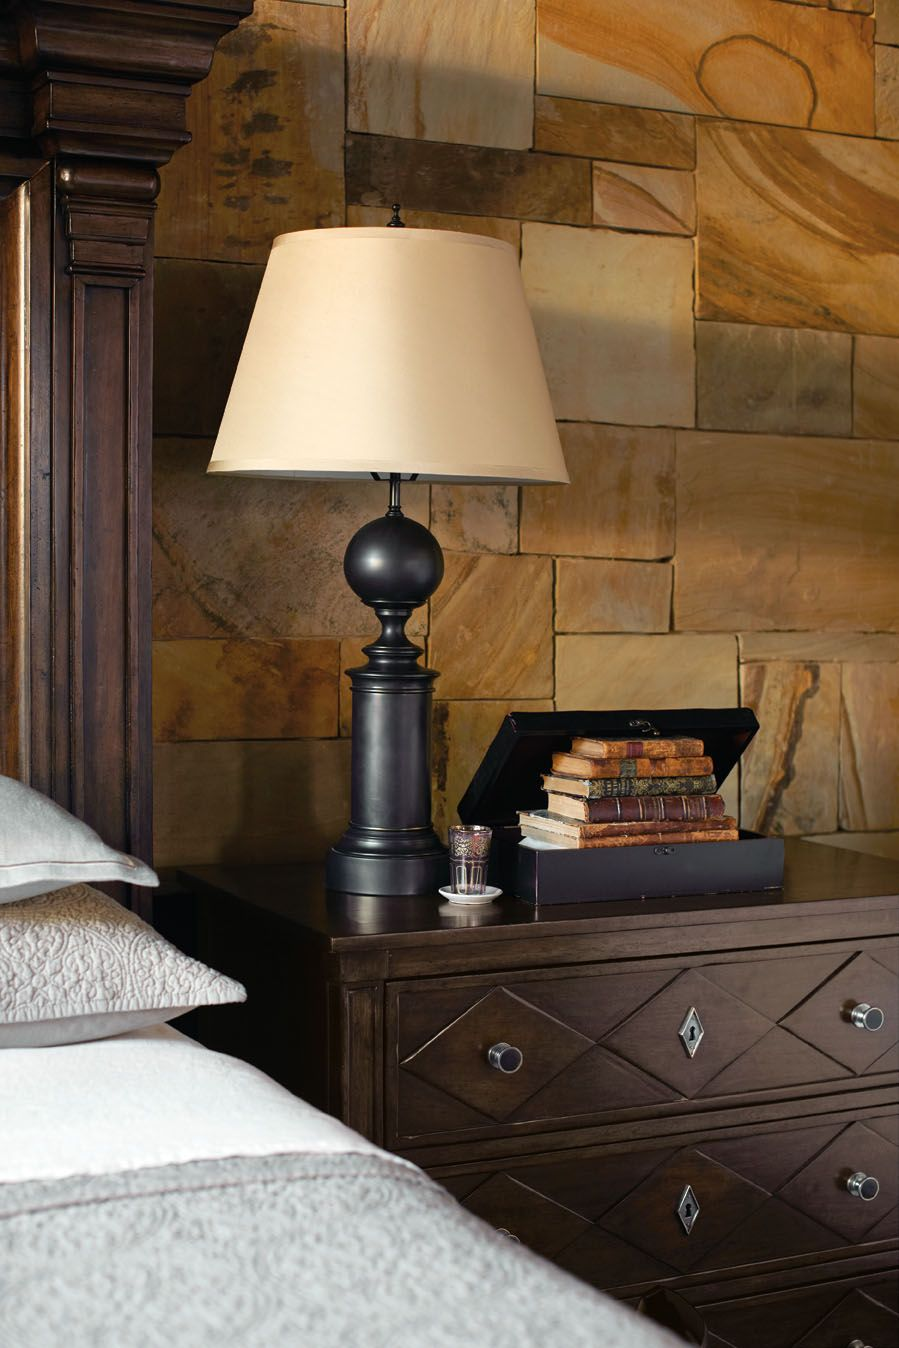 Furniture Stores In Denver Co Bedroom Furniture At Colorado Style Home Furnishings Denver